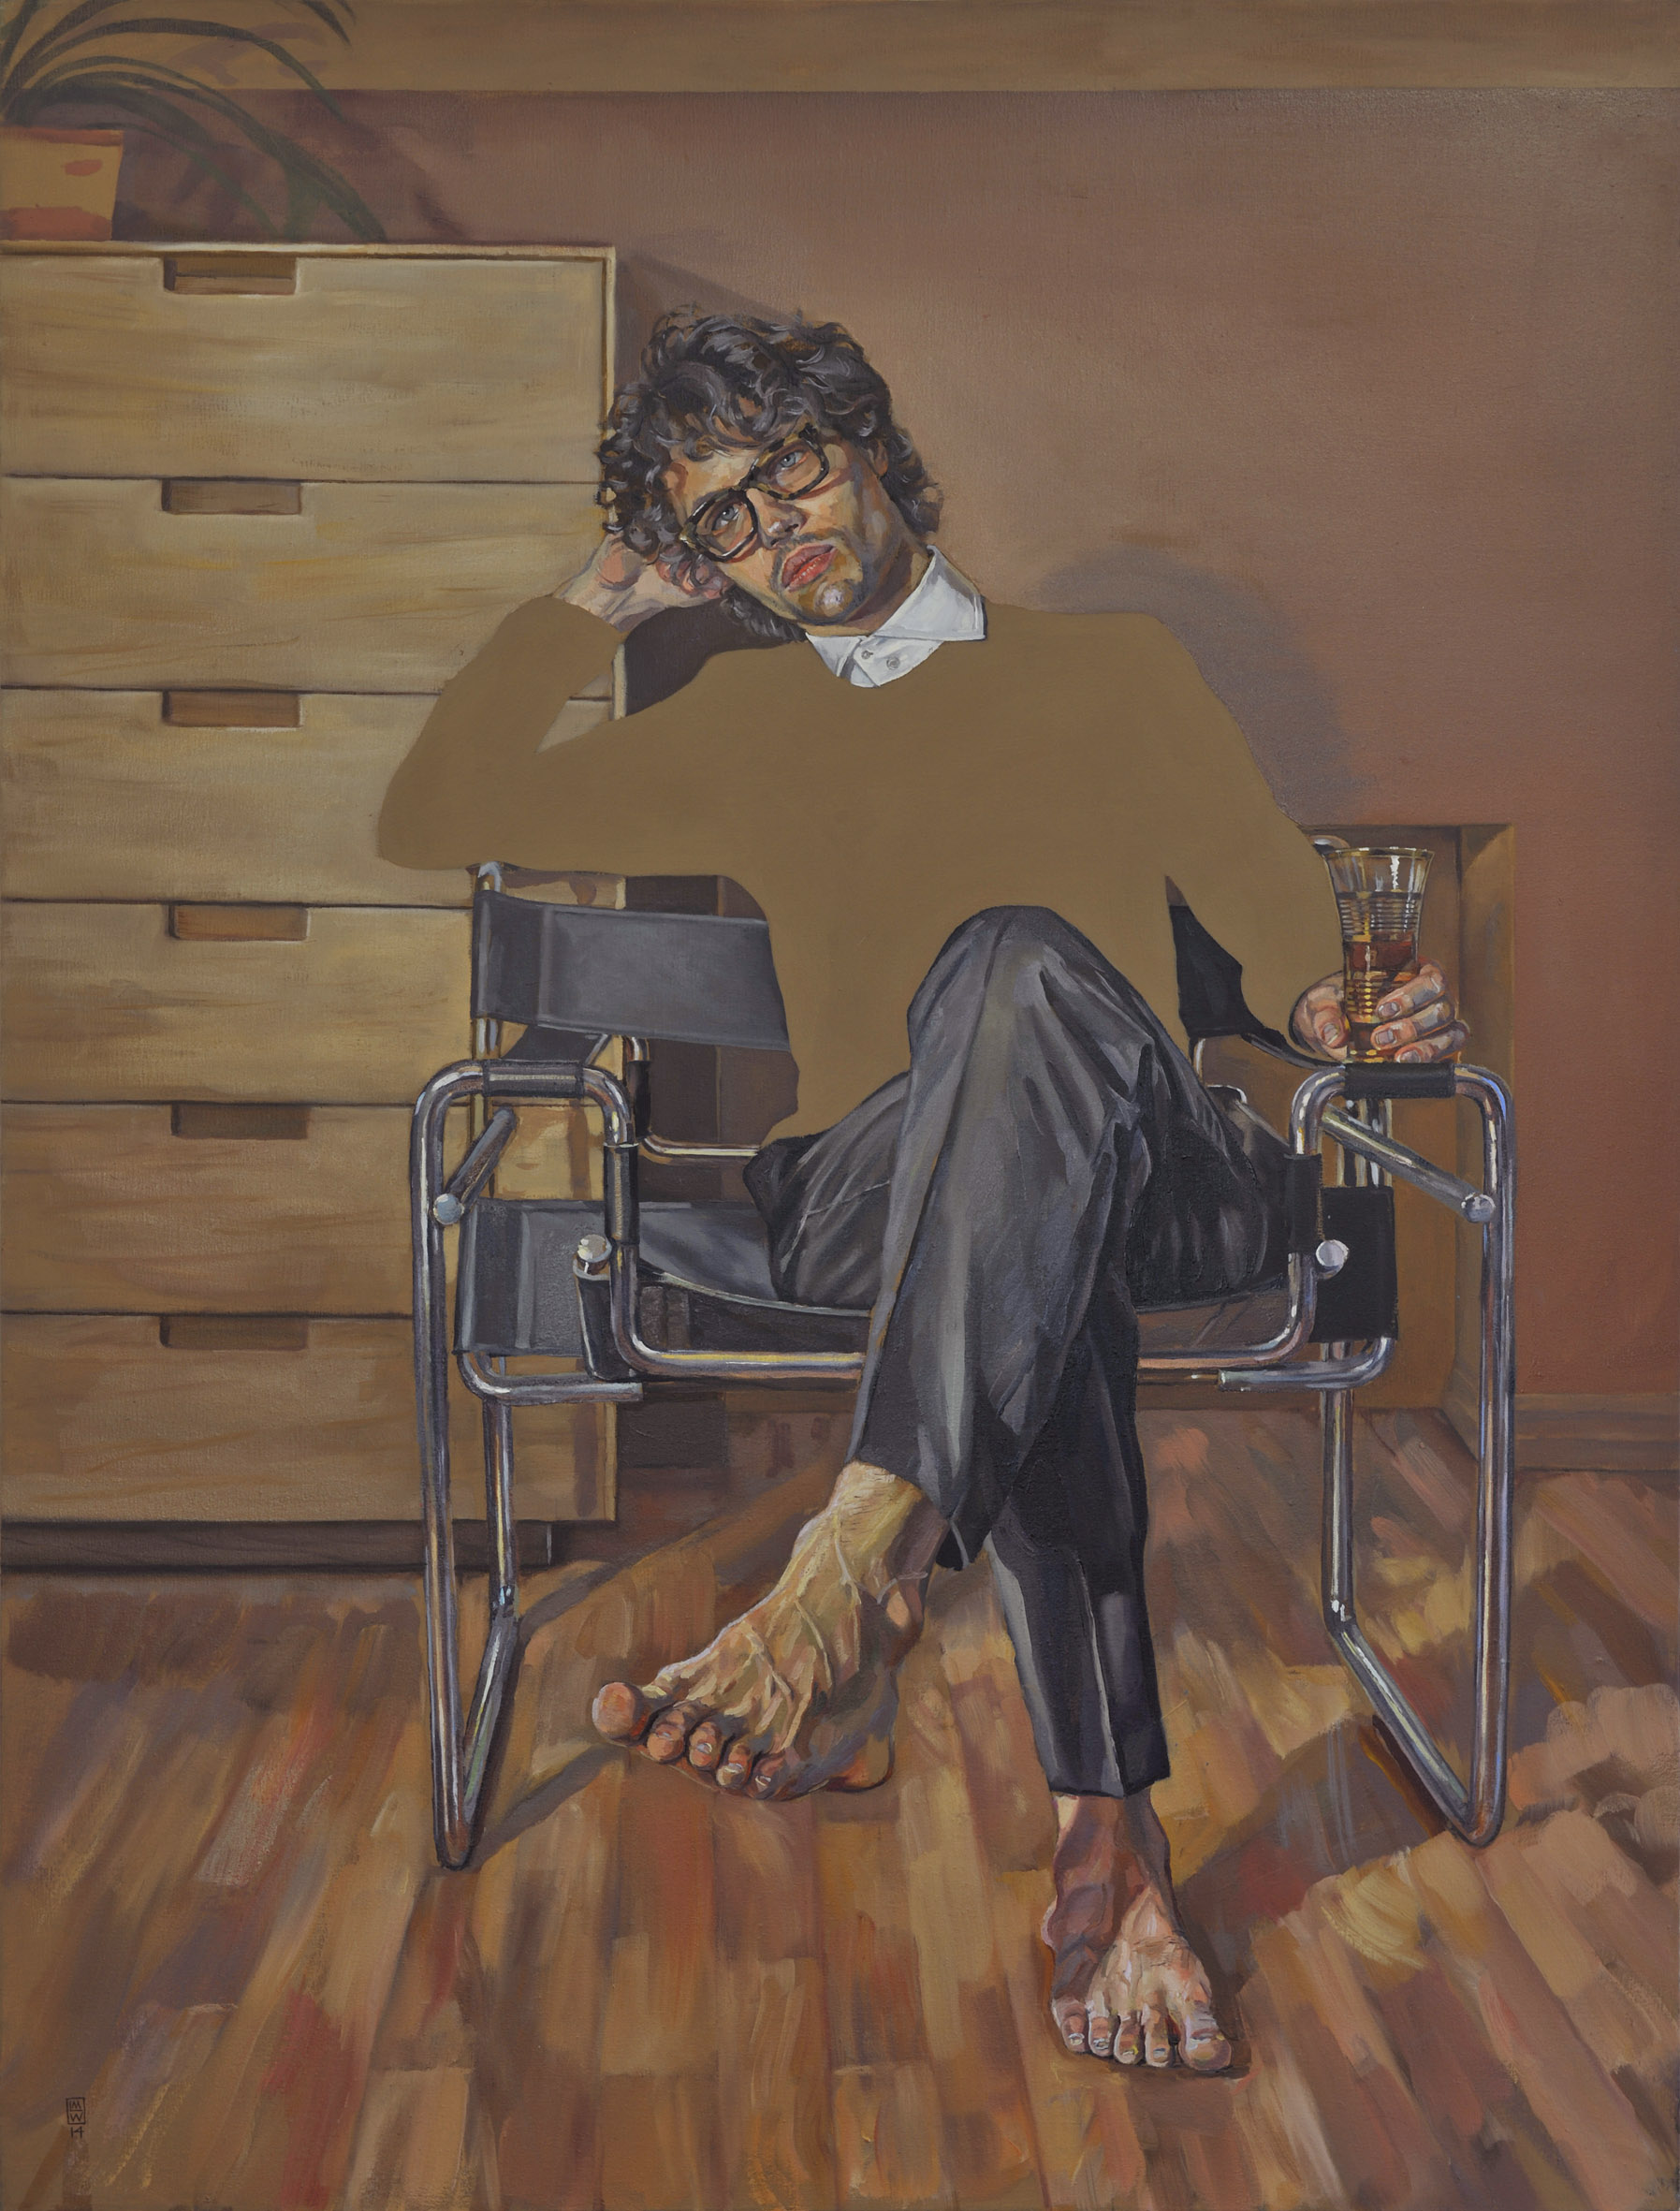 Joachim Gram  . Oil on canvas. 4 x 3 foot.  below:   De Laszlo as DL  . Oil on linen. 125.5 x 121.5 cm.